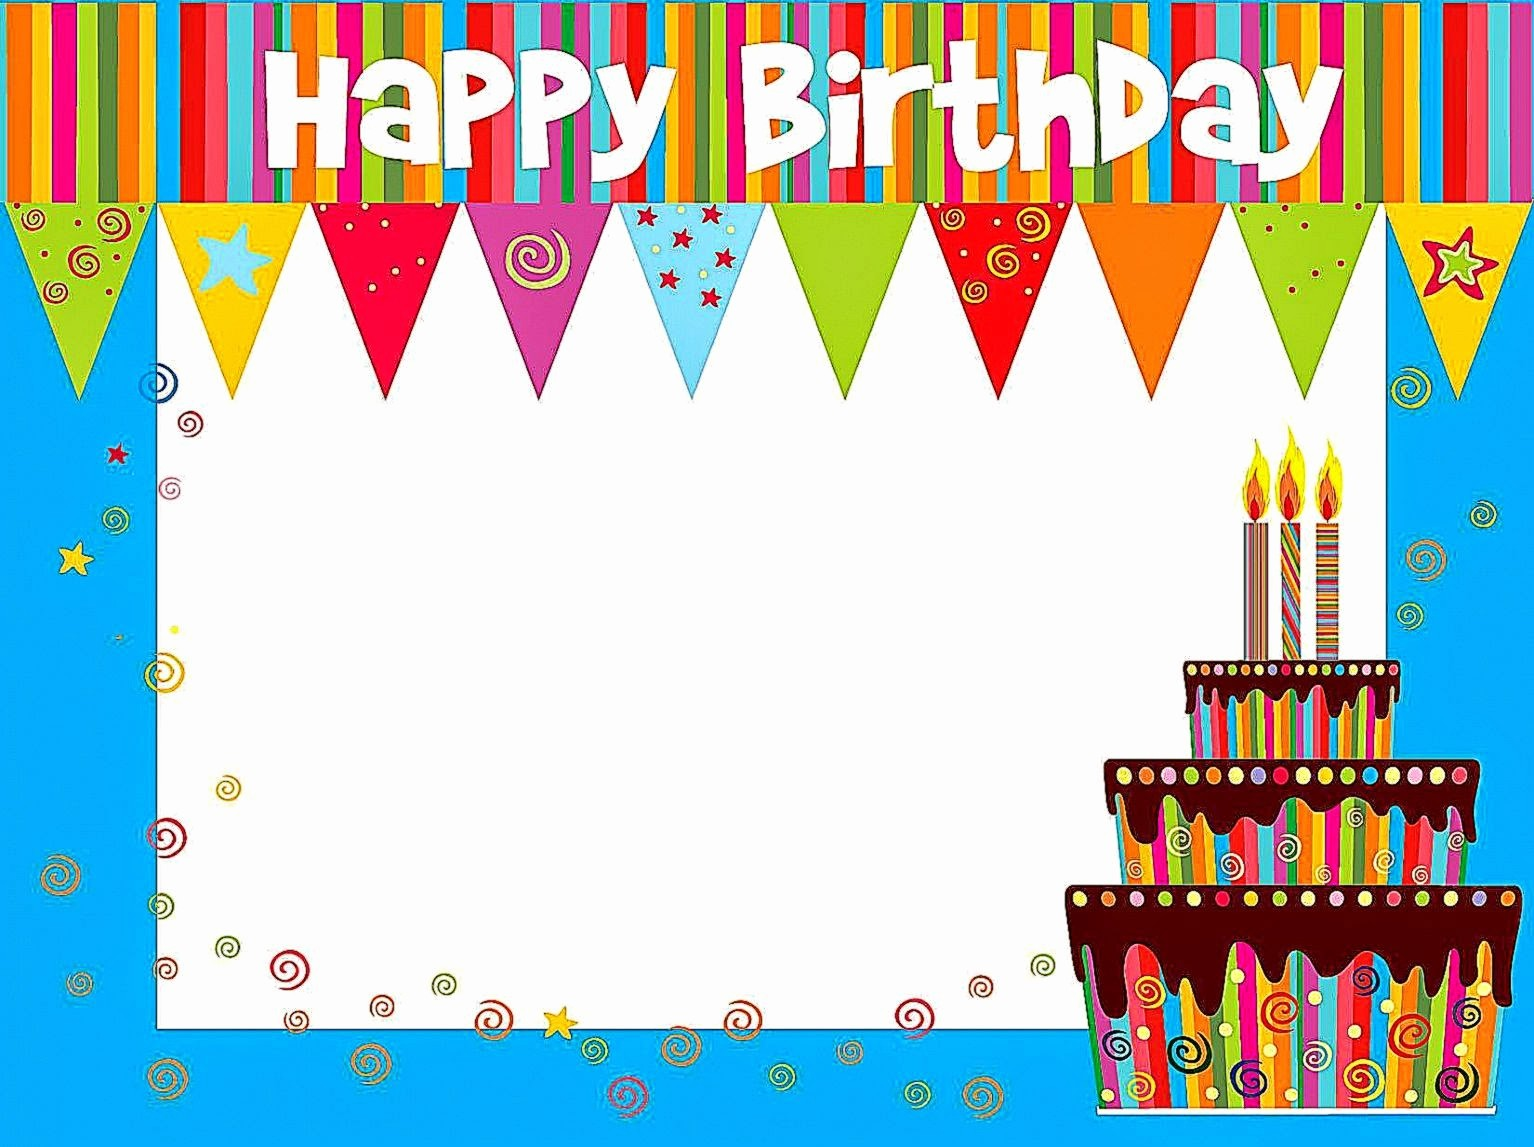 Happy Birthday Certificate Free Printable Luxury Birthday Card Borders – Best Happy Birthday Wishes